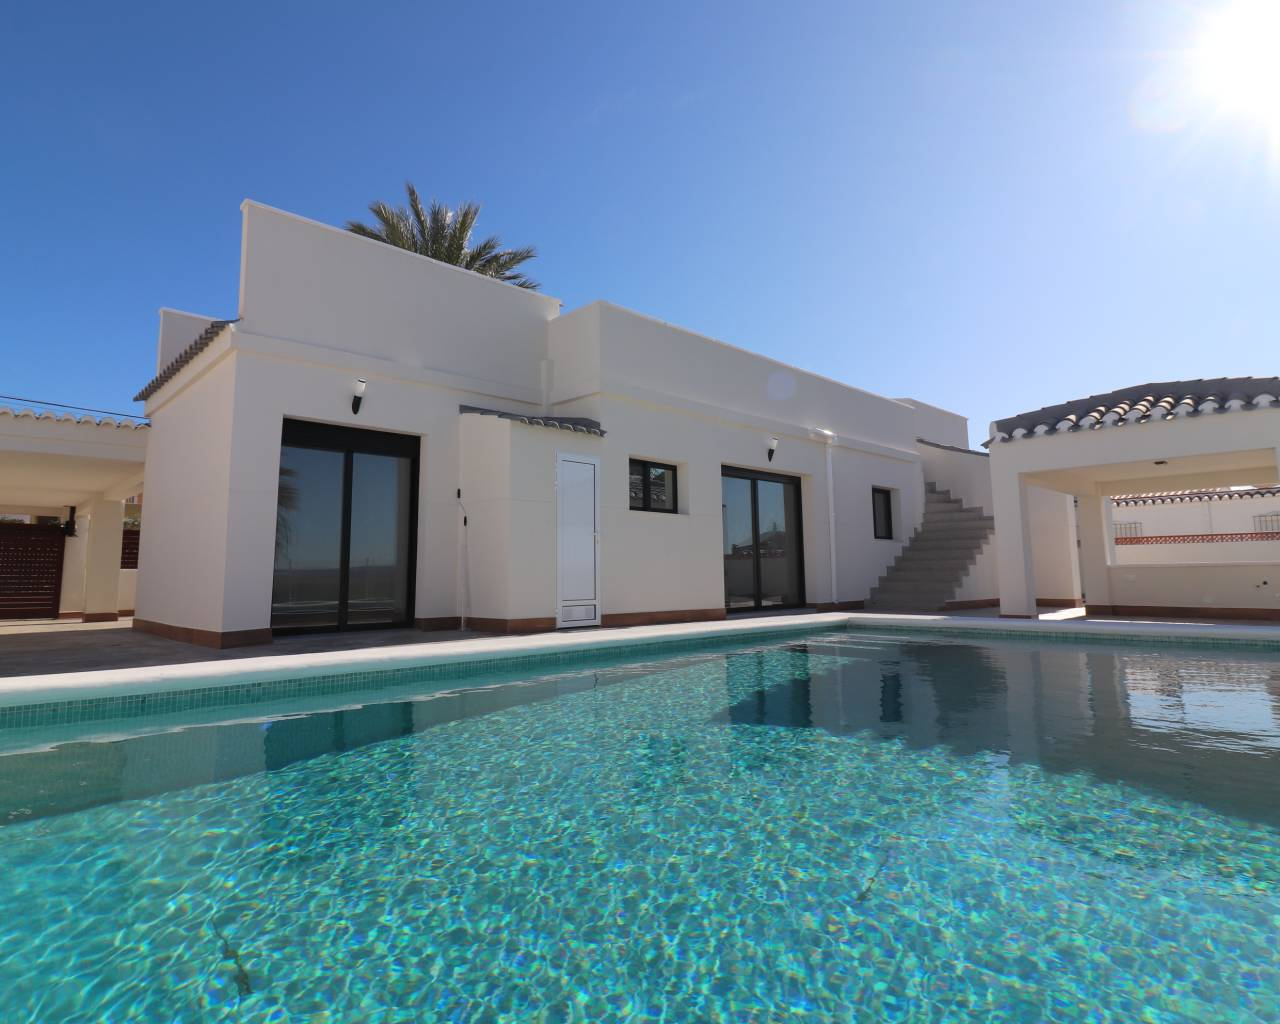 Detached Villa - Sale - Torrevieja - Torretas